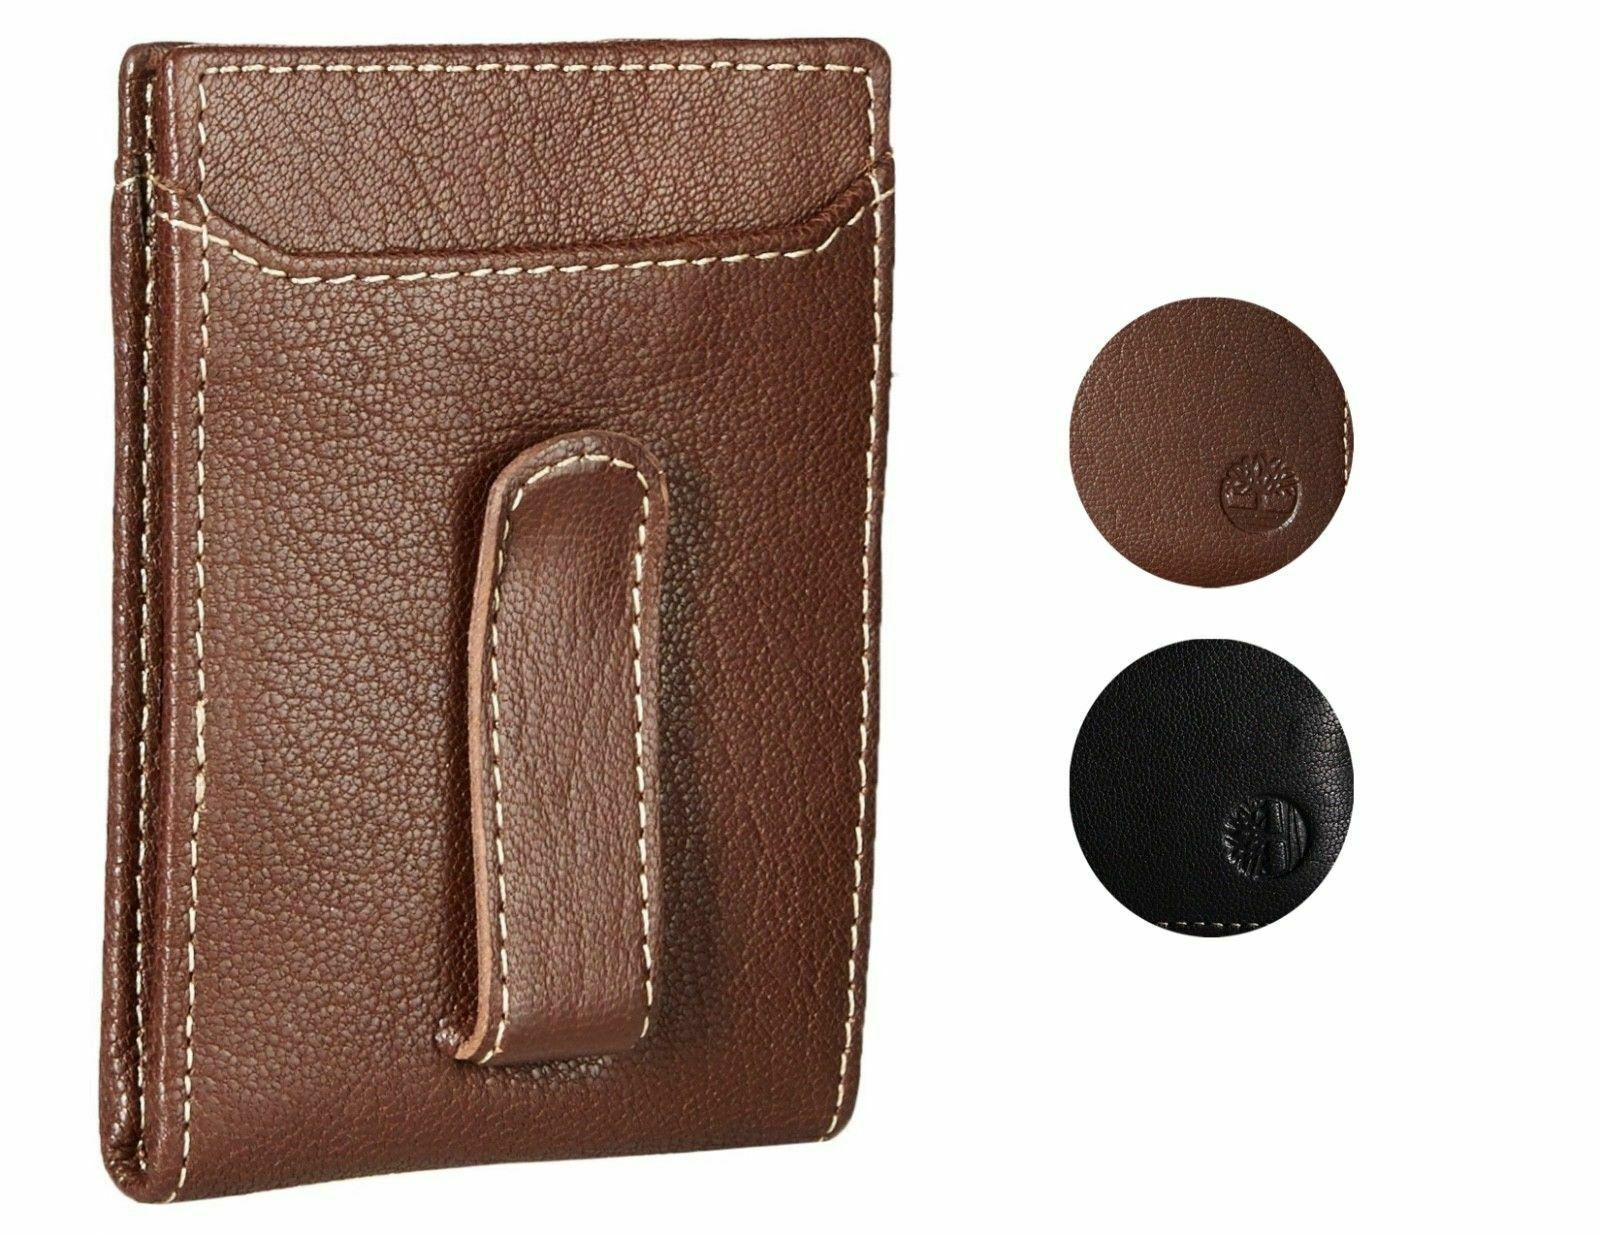 Timberland Men's Premium Genuine Leather Money Clip Credit Card Id Wallet